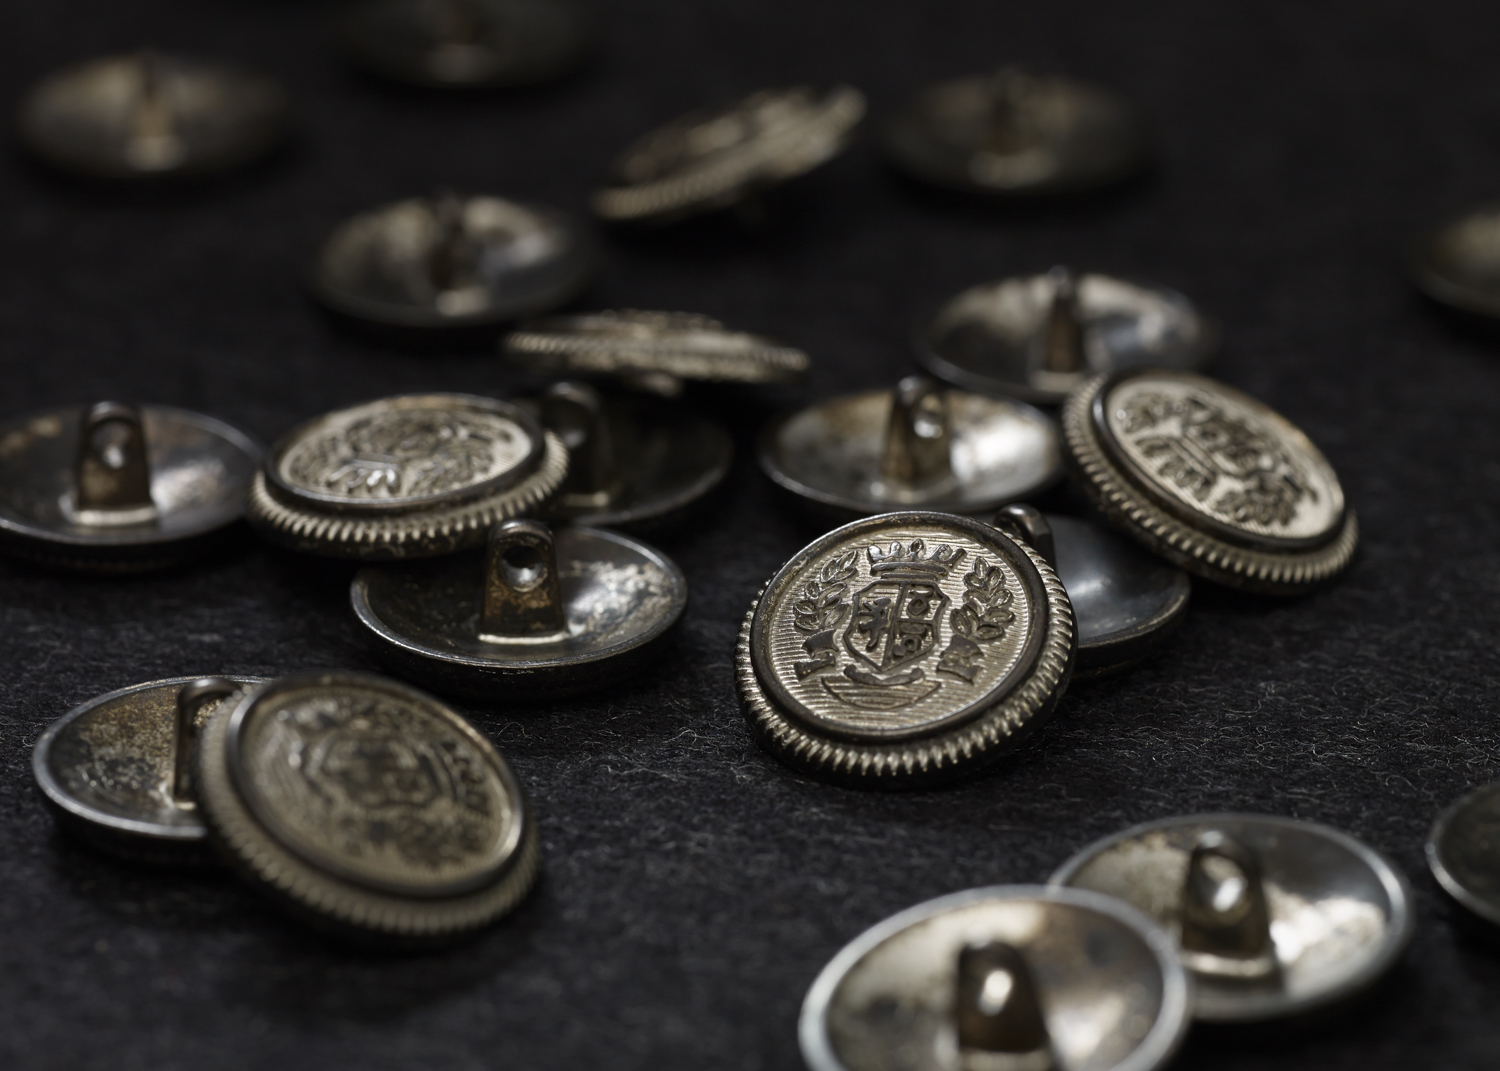 ANTIQUE_BUTTONS-0067.jpg